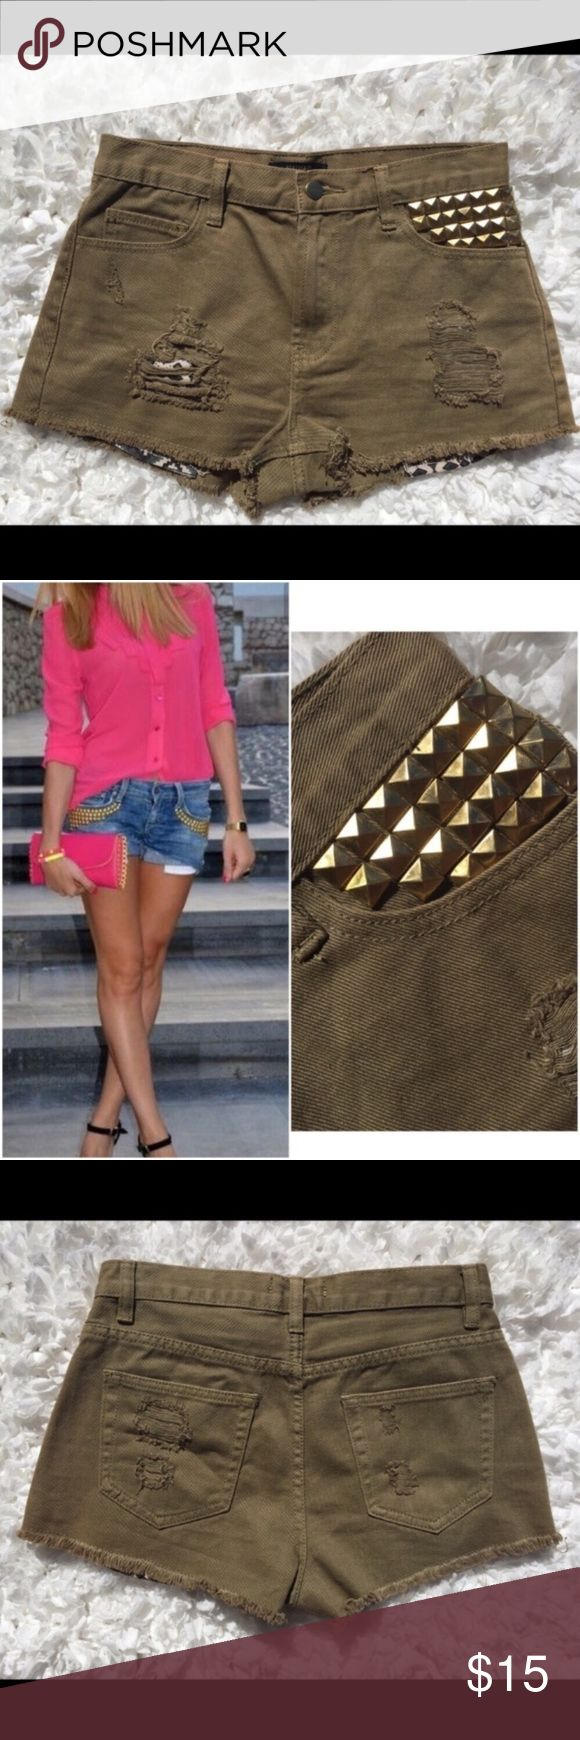 Forever 21 Olive Khaki Stud Pocket Tribal Shorts Olive Khaki Gold Studded Pocket Tribal Shorts. These cute shorts have a destroyed theme and a tribal/Aztec print under the ripped part. Cute with a loose tee and boots! Can be styled SO many ways! Listing them as 'Green' because they are close to an 'Olive' color. Style photo is not mine and is for style purposes only. (Item: 180902-5P) Forever 21 Shorts